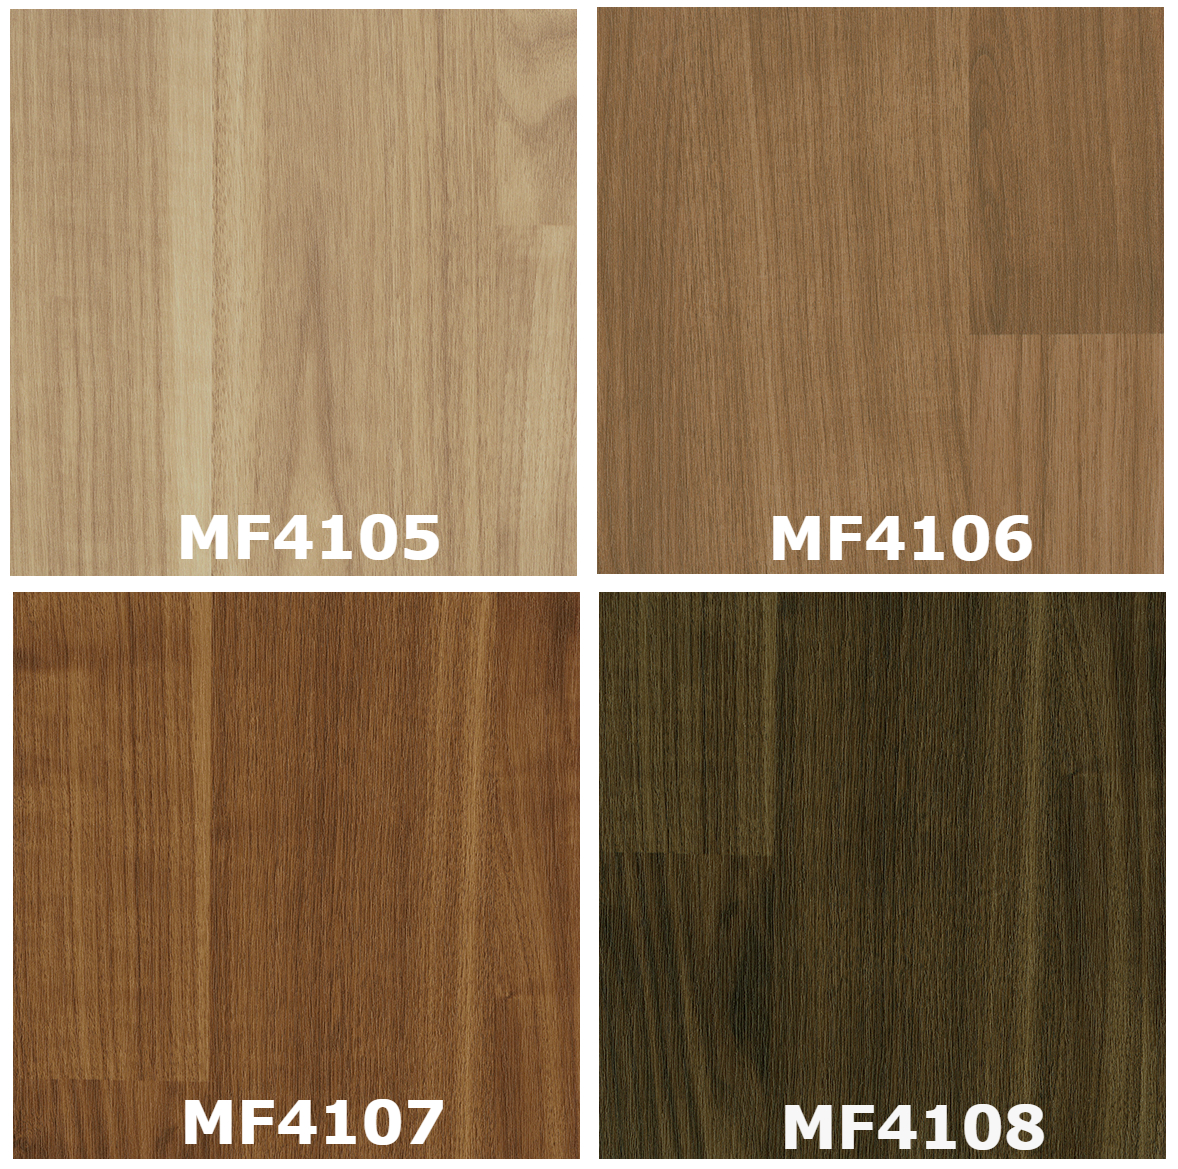 MF4105 - MF4108, 4 Color Available, Sincol PVC Laminate Flooring, Free Sample